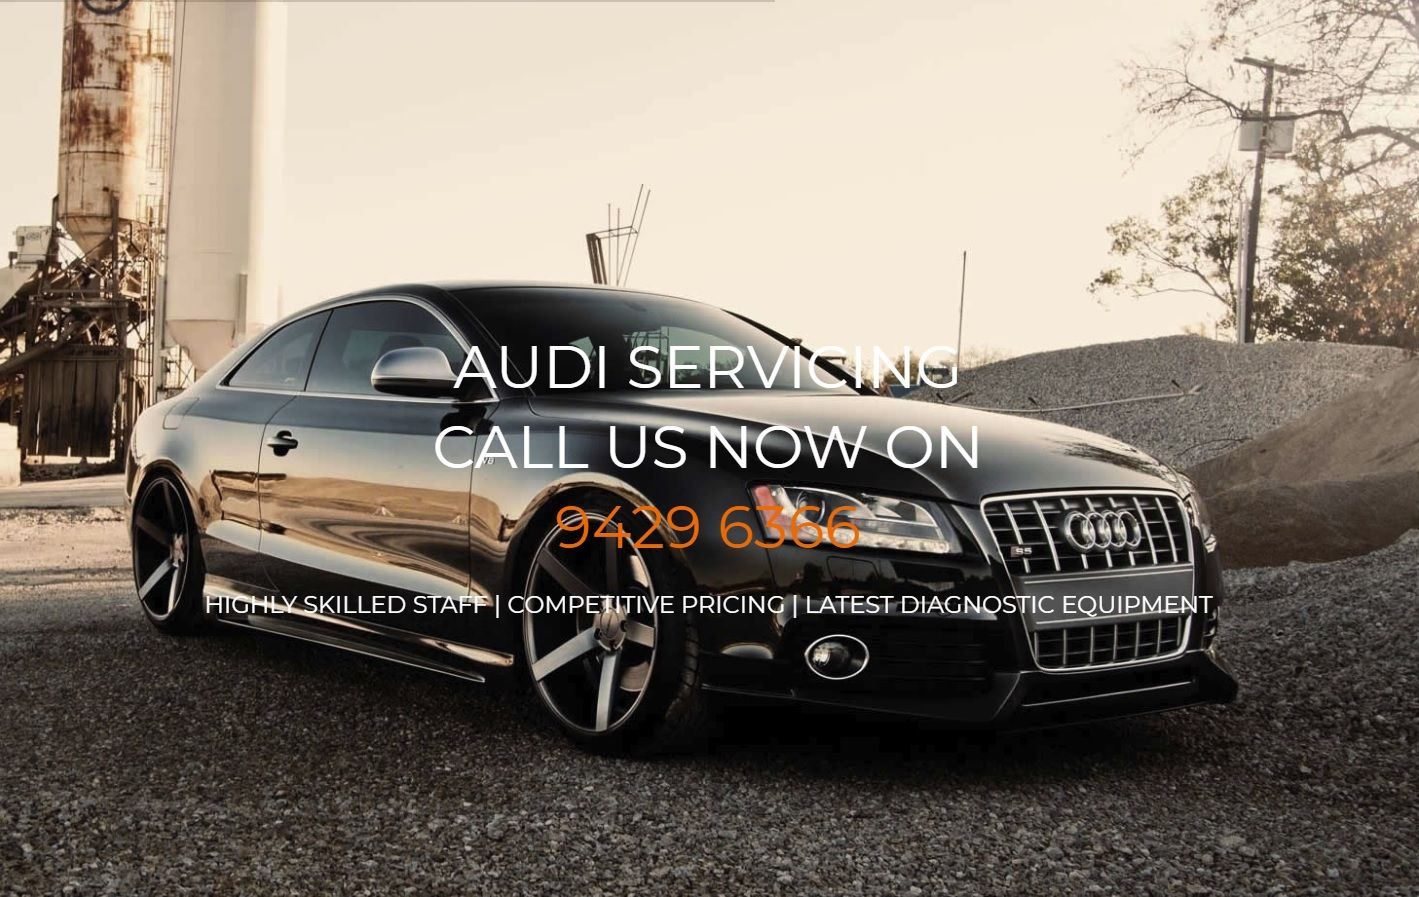 Looking for professional & expert car servicing? We